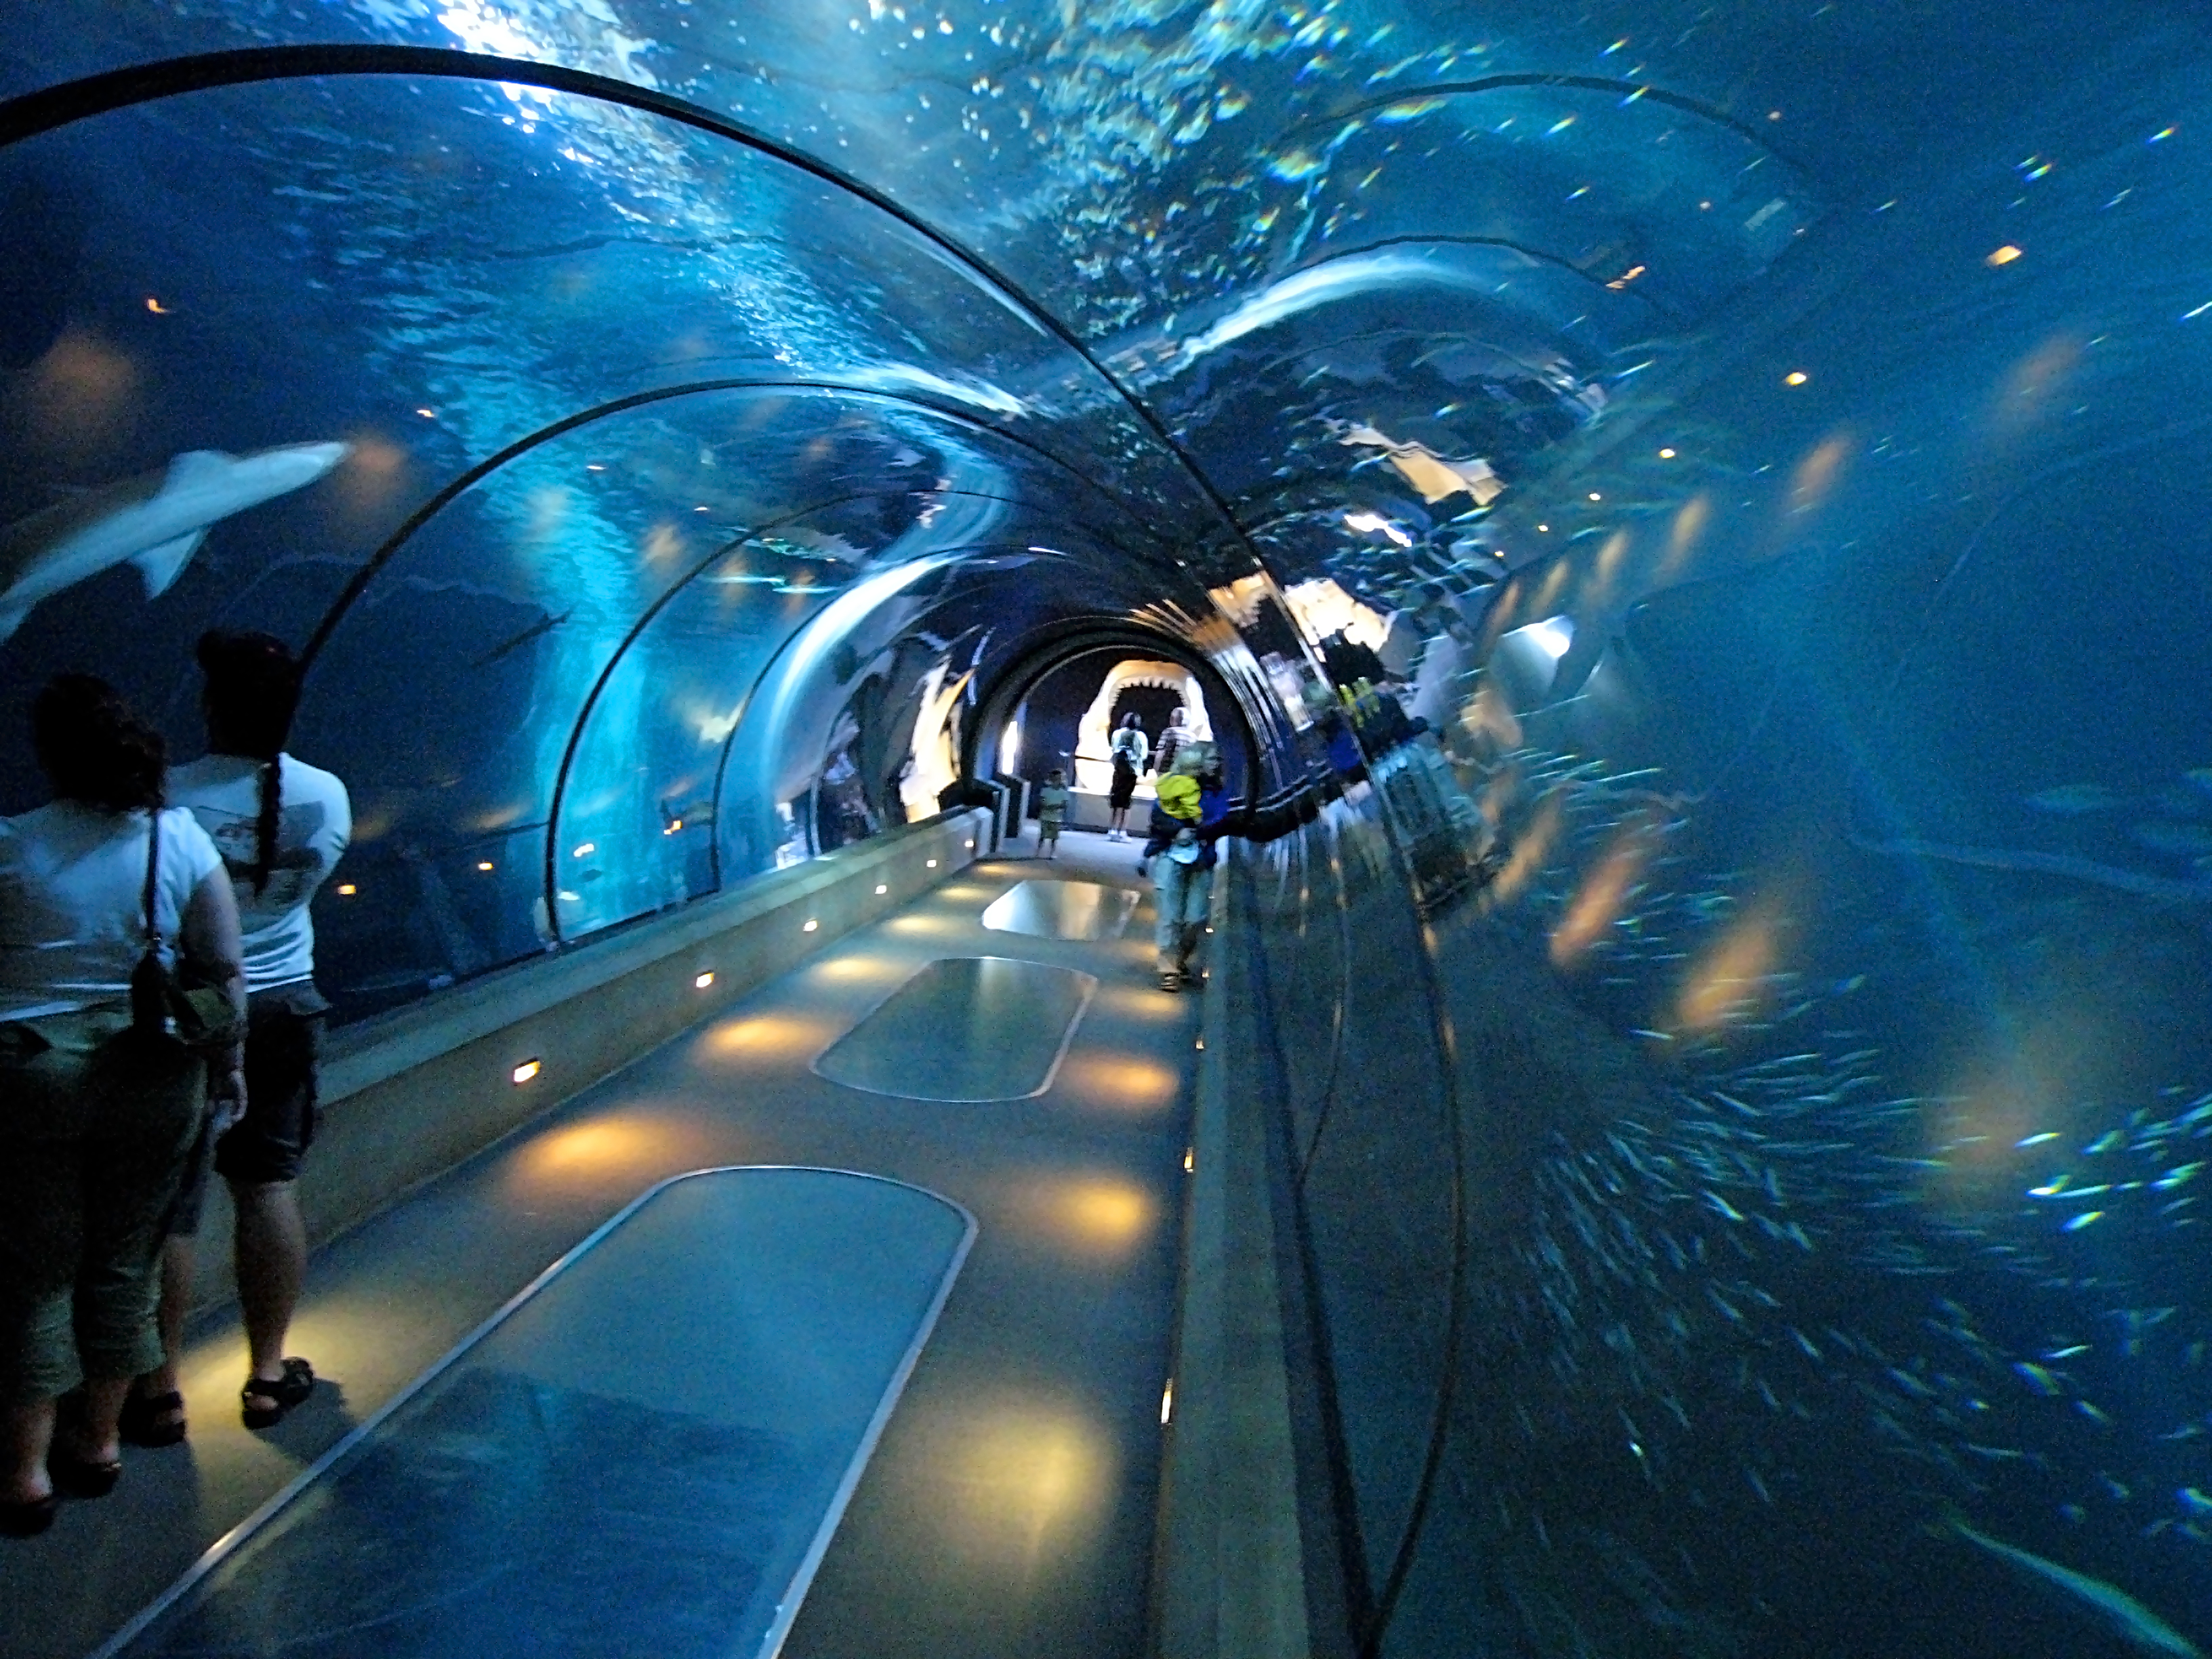 File Aquarium Tunnel Jpg